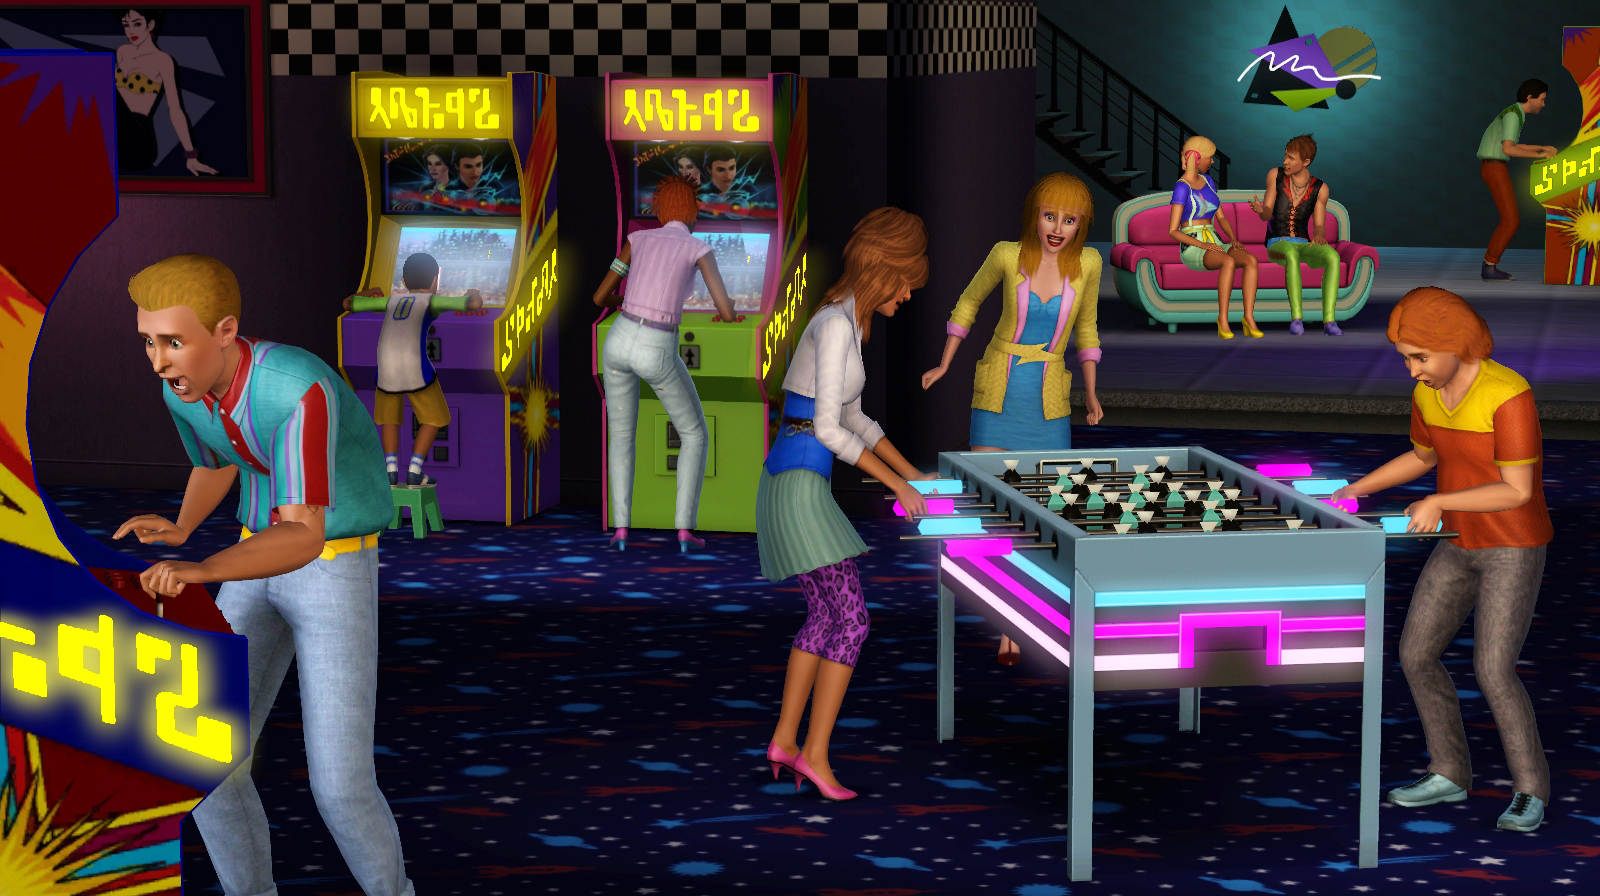 the-sims-80s-arcade-games-01